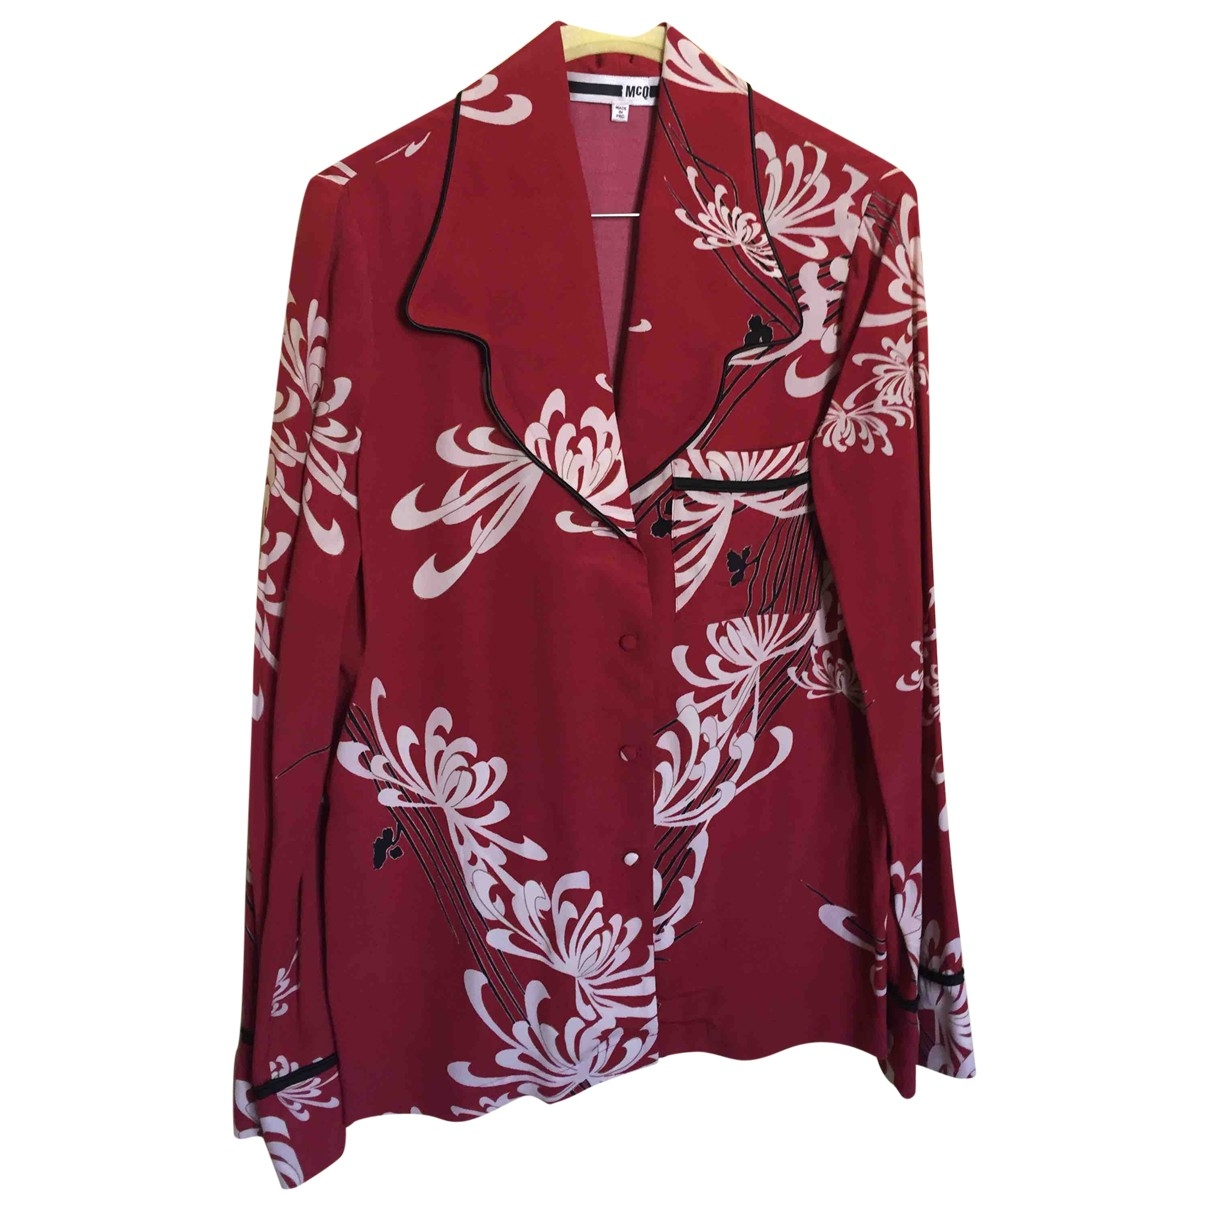 Mcq \N Burgundy  top for Women 38 IT